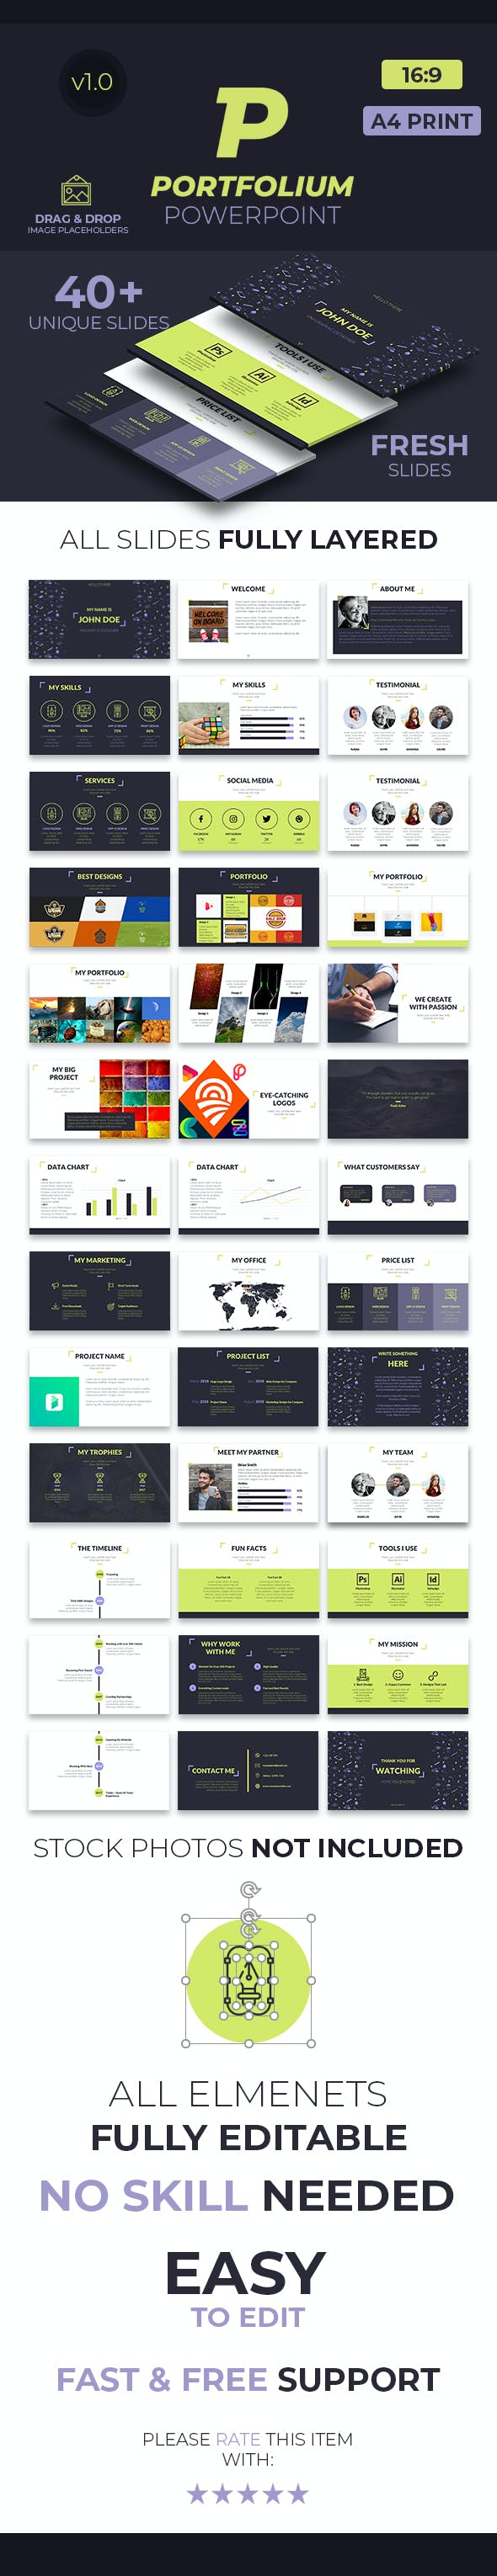 portfolium portfolio powerpoint presentation template by creative fox